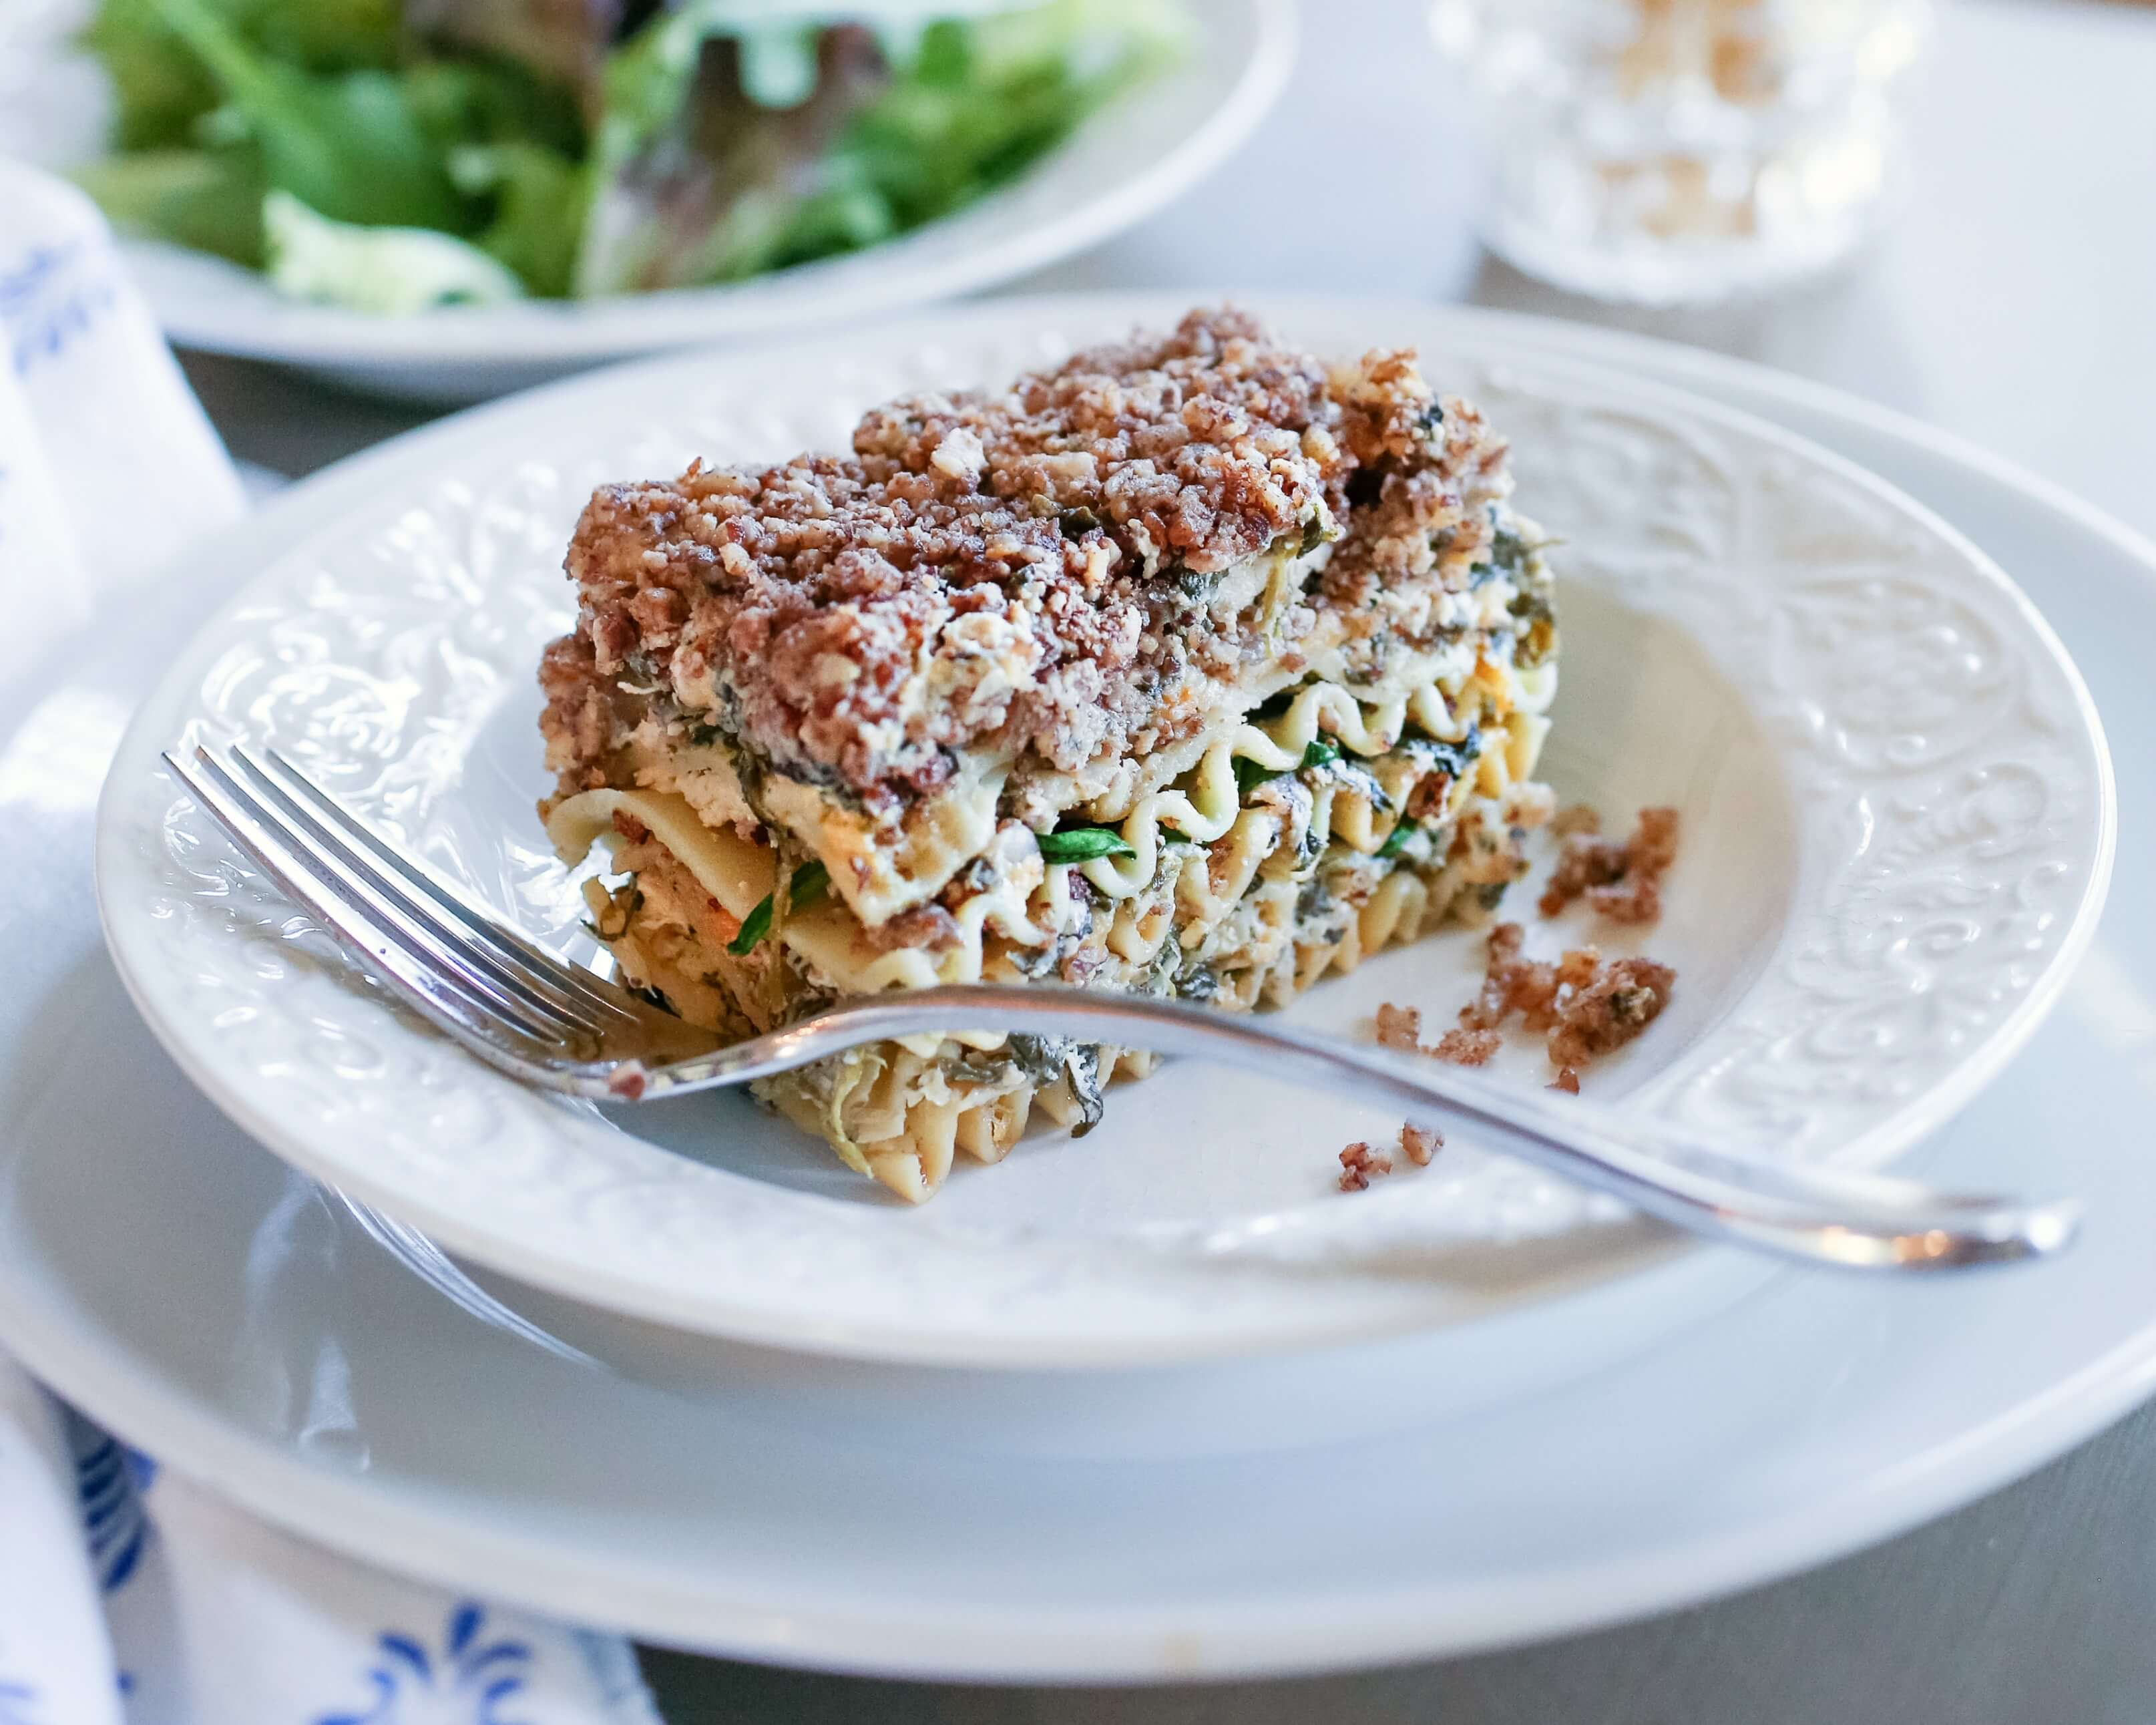 Chicken Florentine Lasagna 1 photo by Susan Scarborough